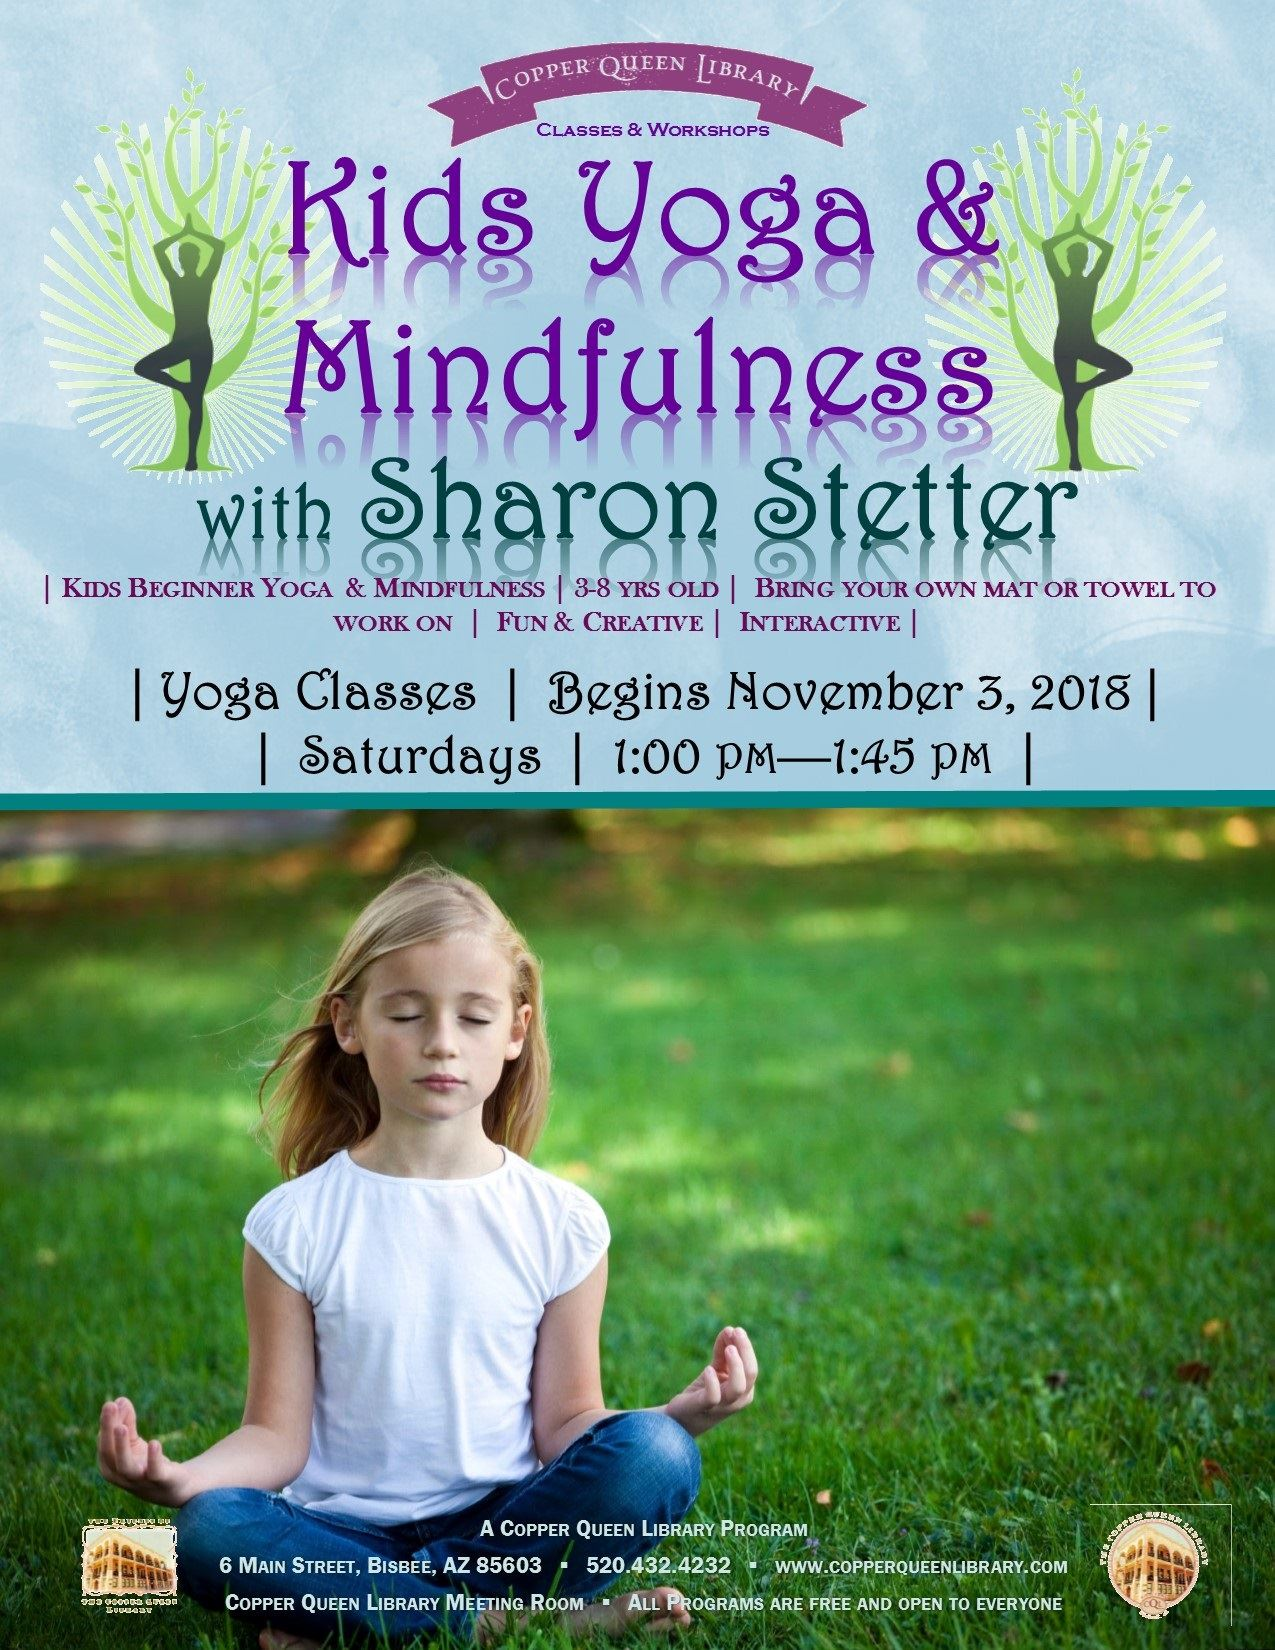 STETTER KIDS YOGA POSTER NOV 2018 8.5 x 11